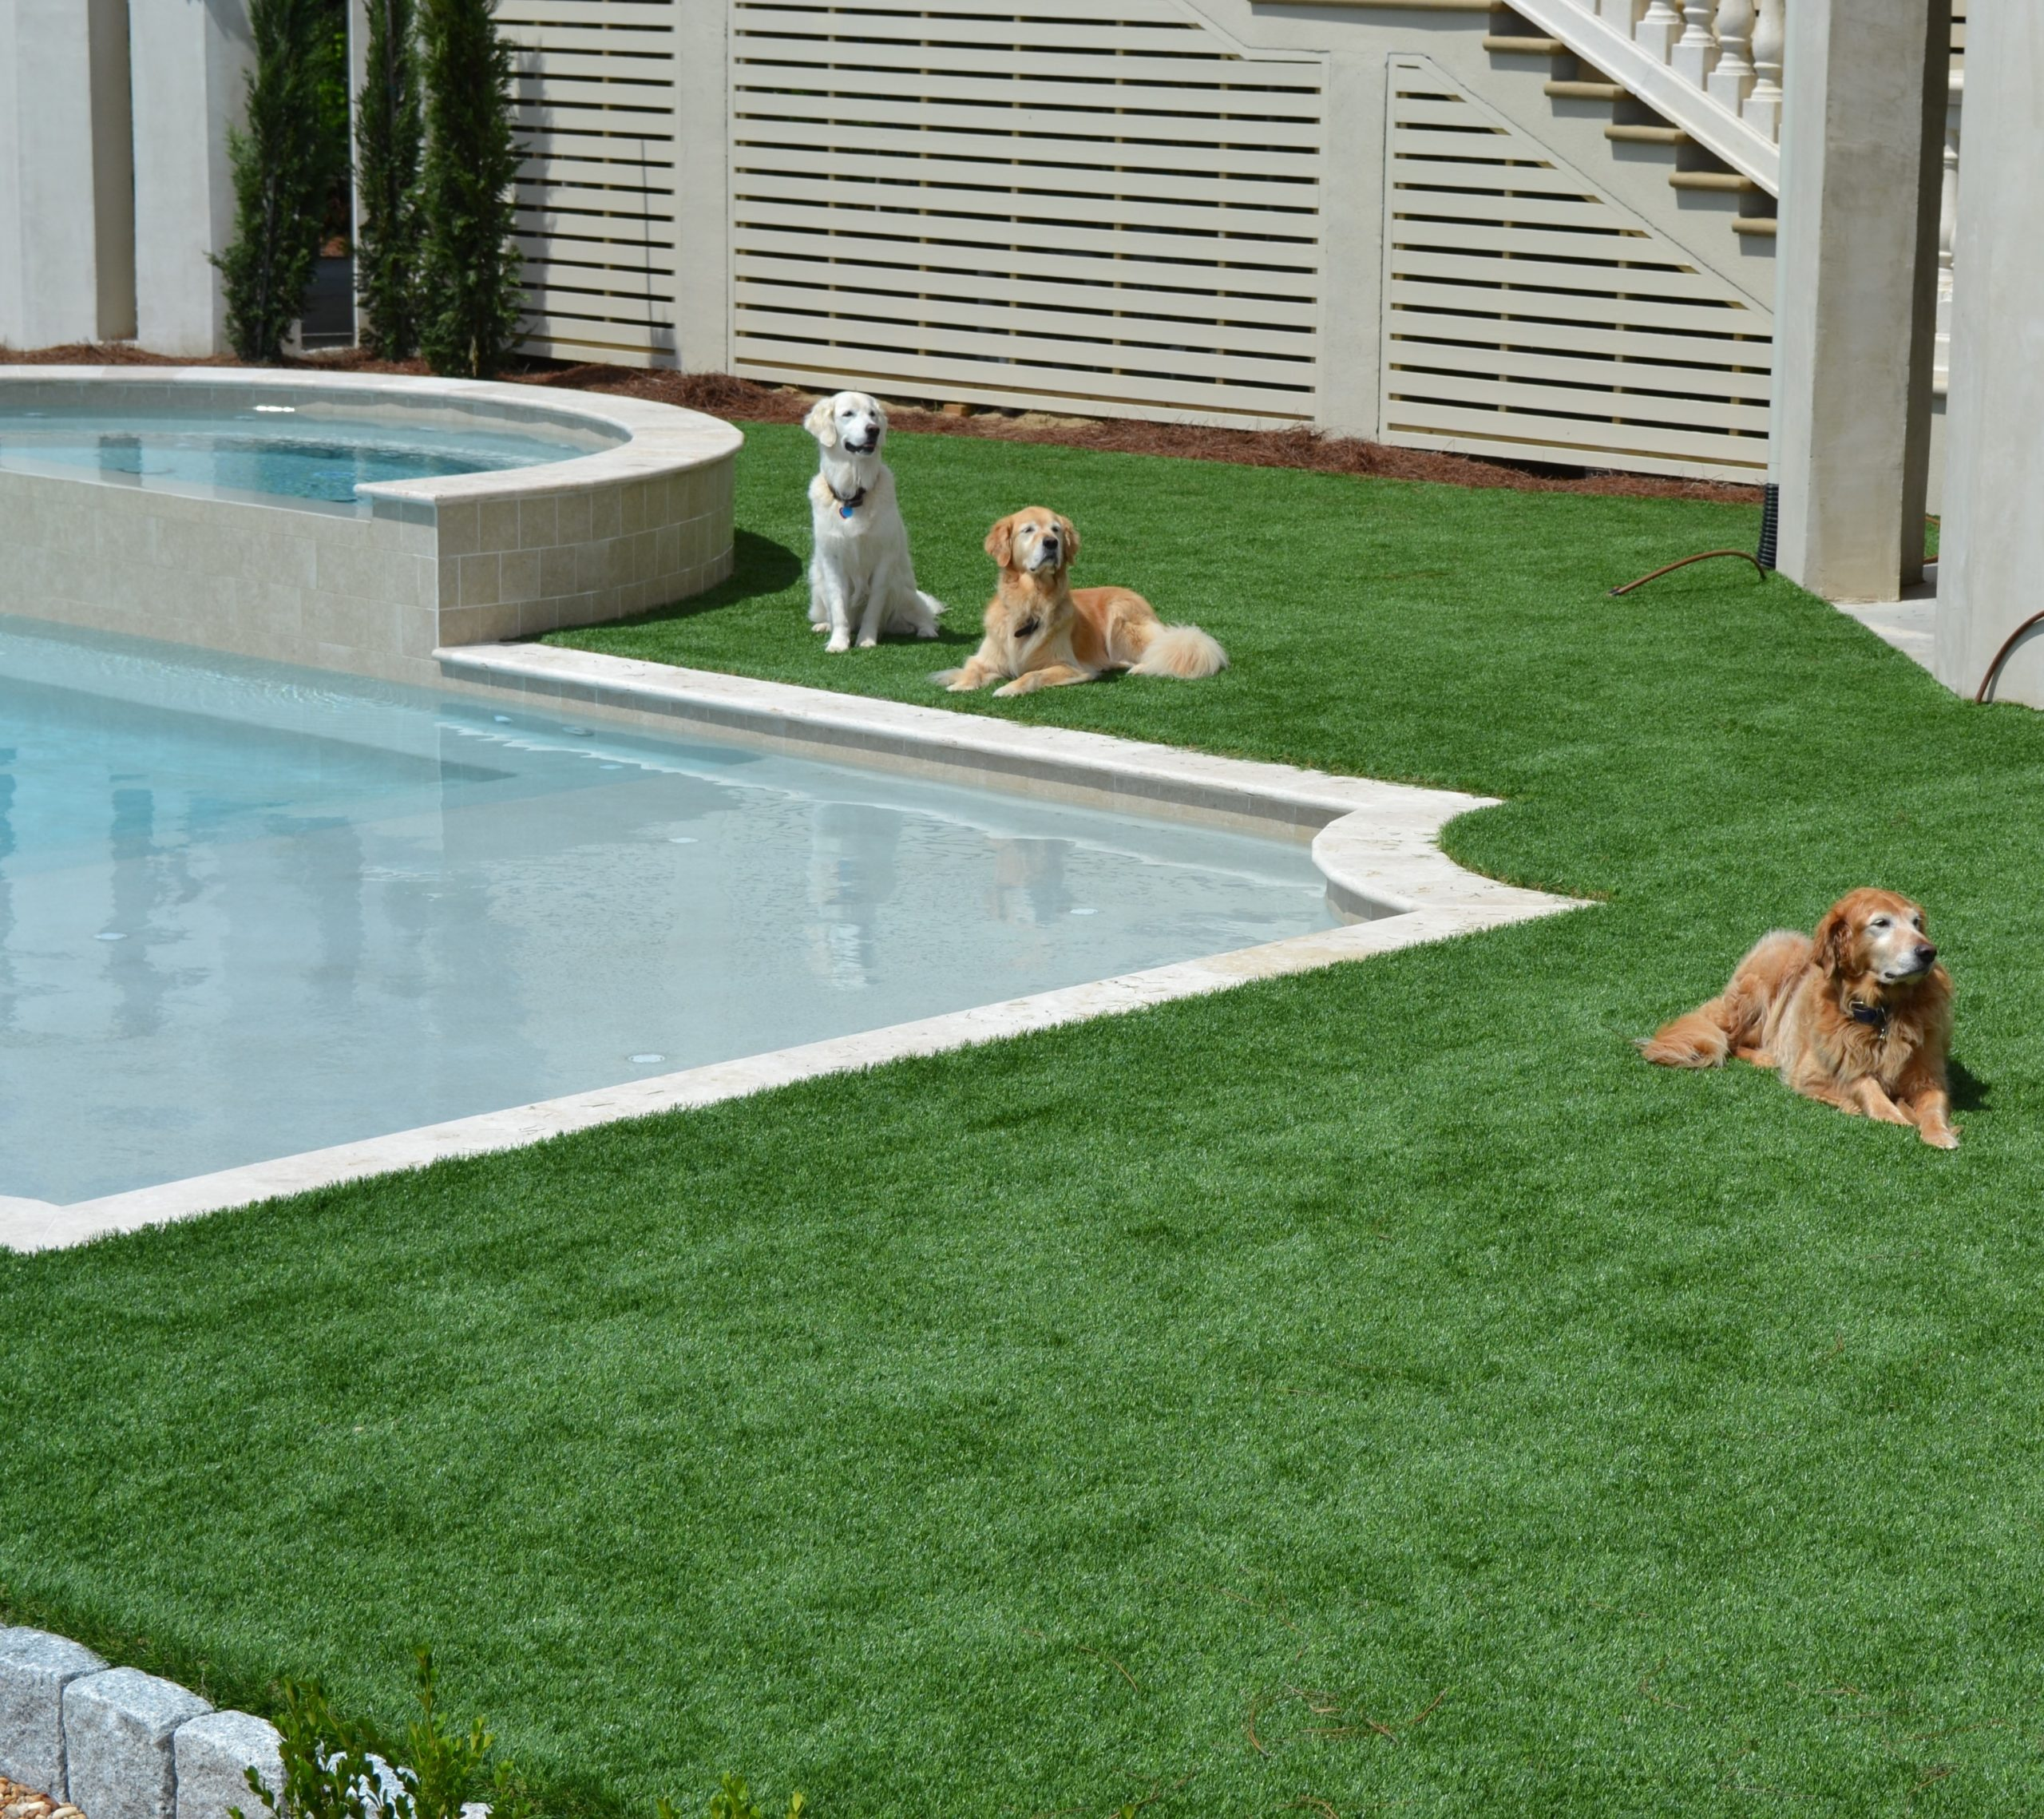 Dogs relaxing on artificial turf next to pool